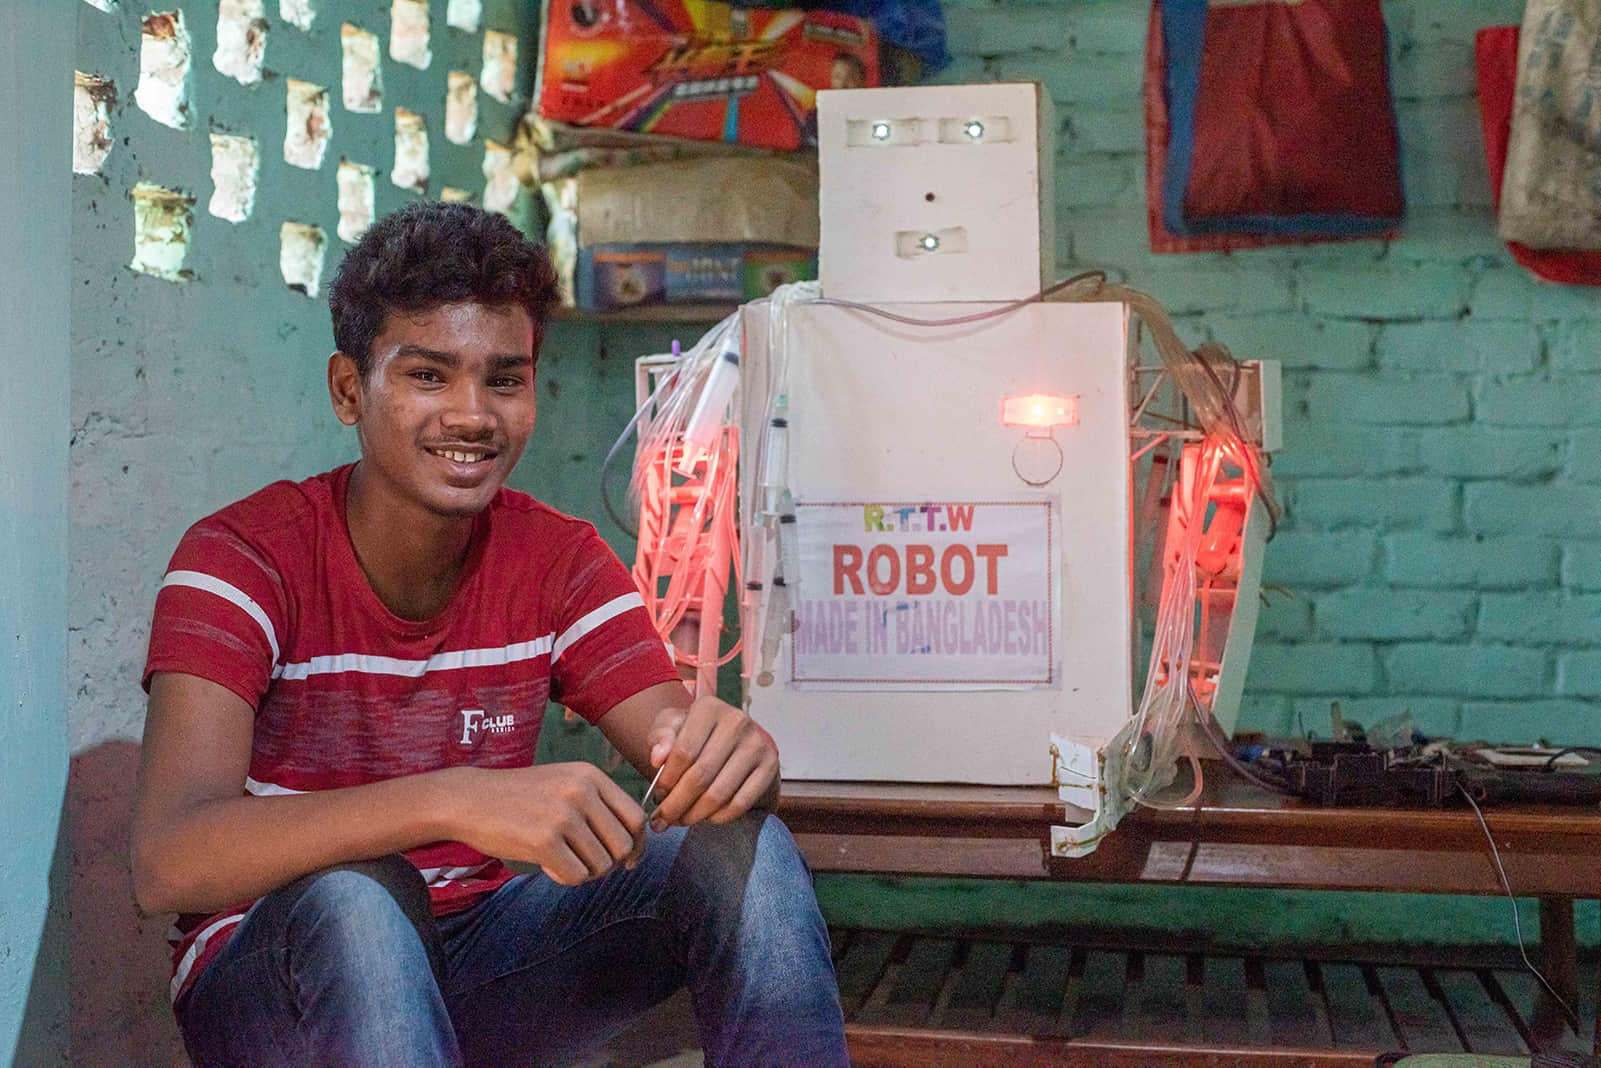 Sanjoy, in a red shirt, is sitting in front of the white cardboard robot he made for the science fair, where he came in second place.